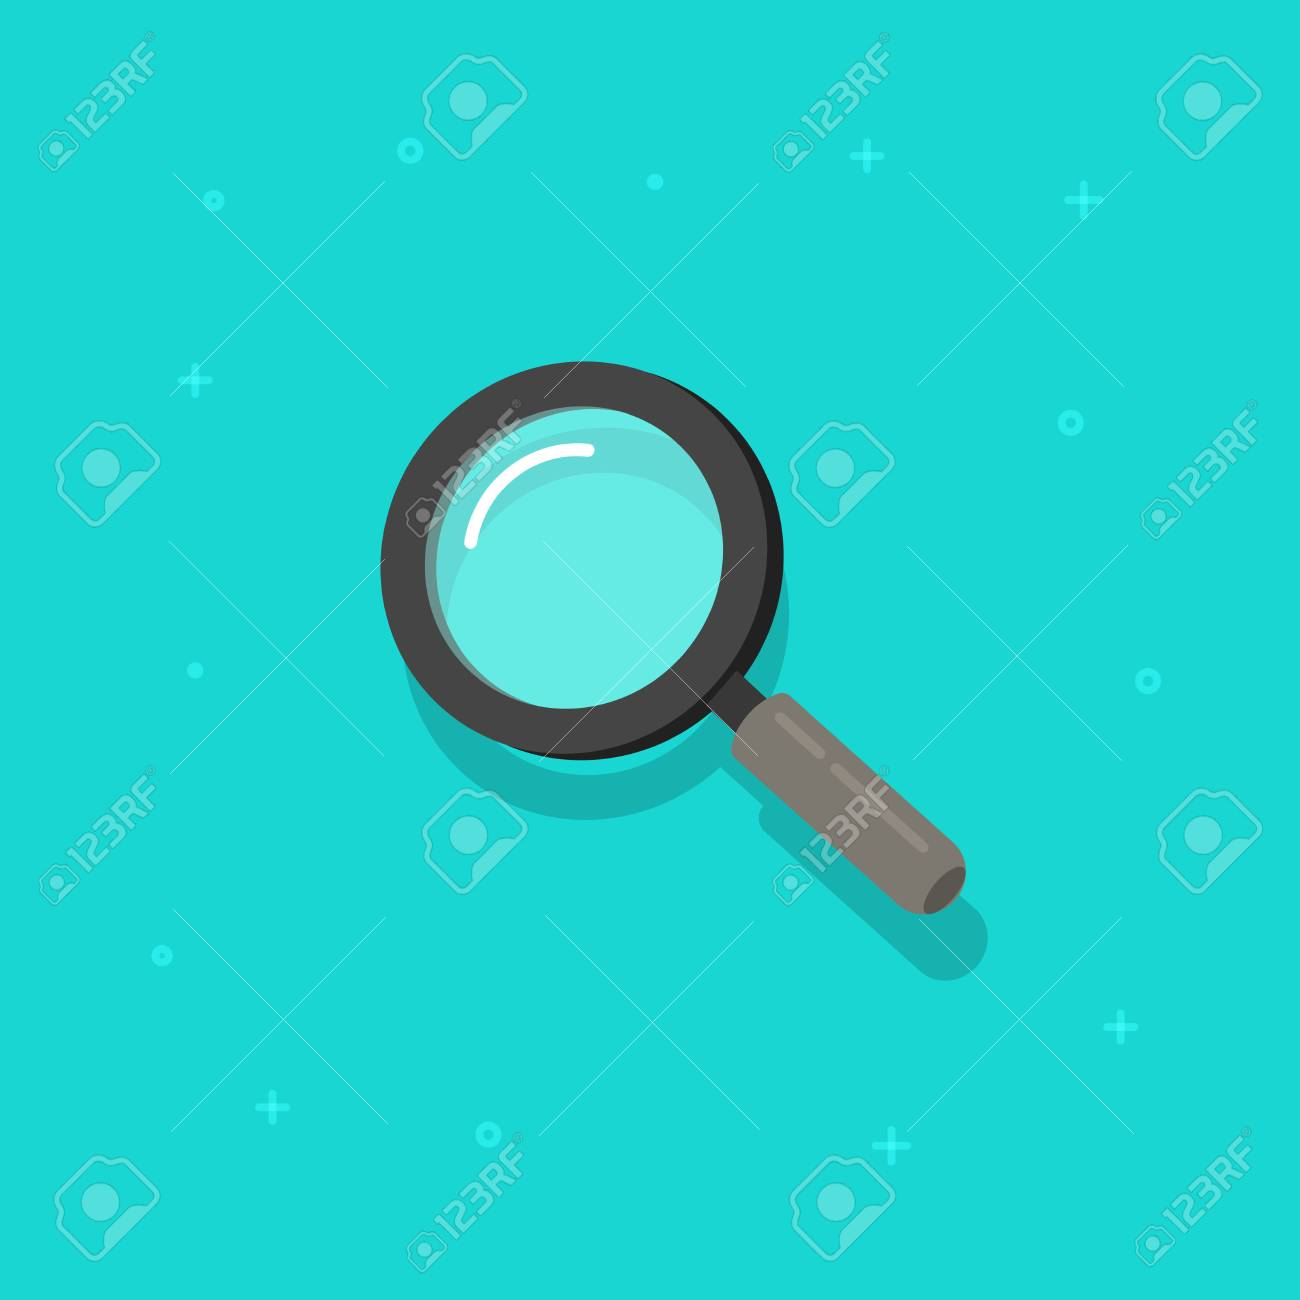 Magnifying glass vector icon, flat cartoon magnifier - 97376579